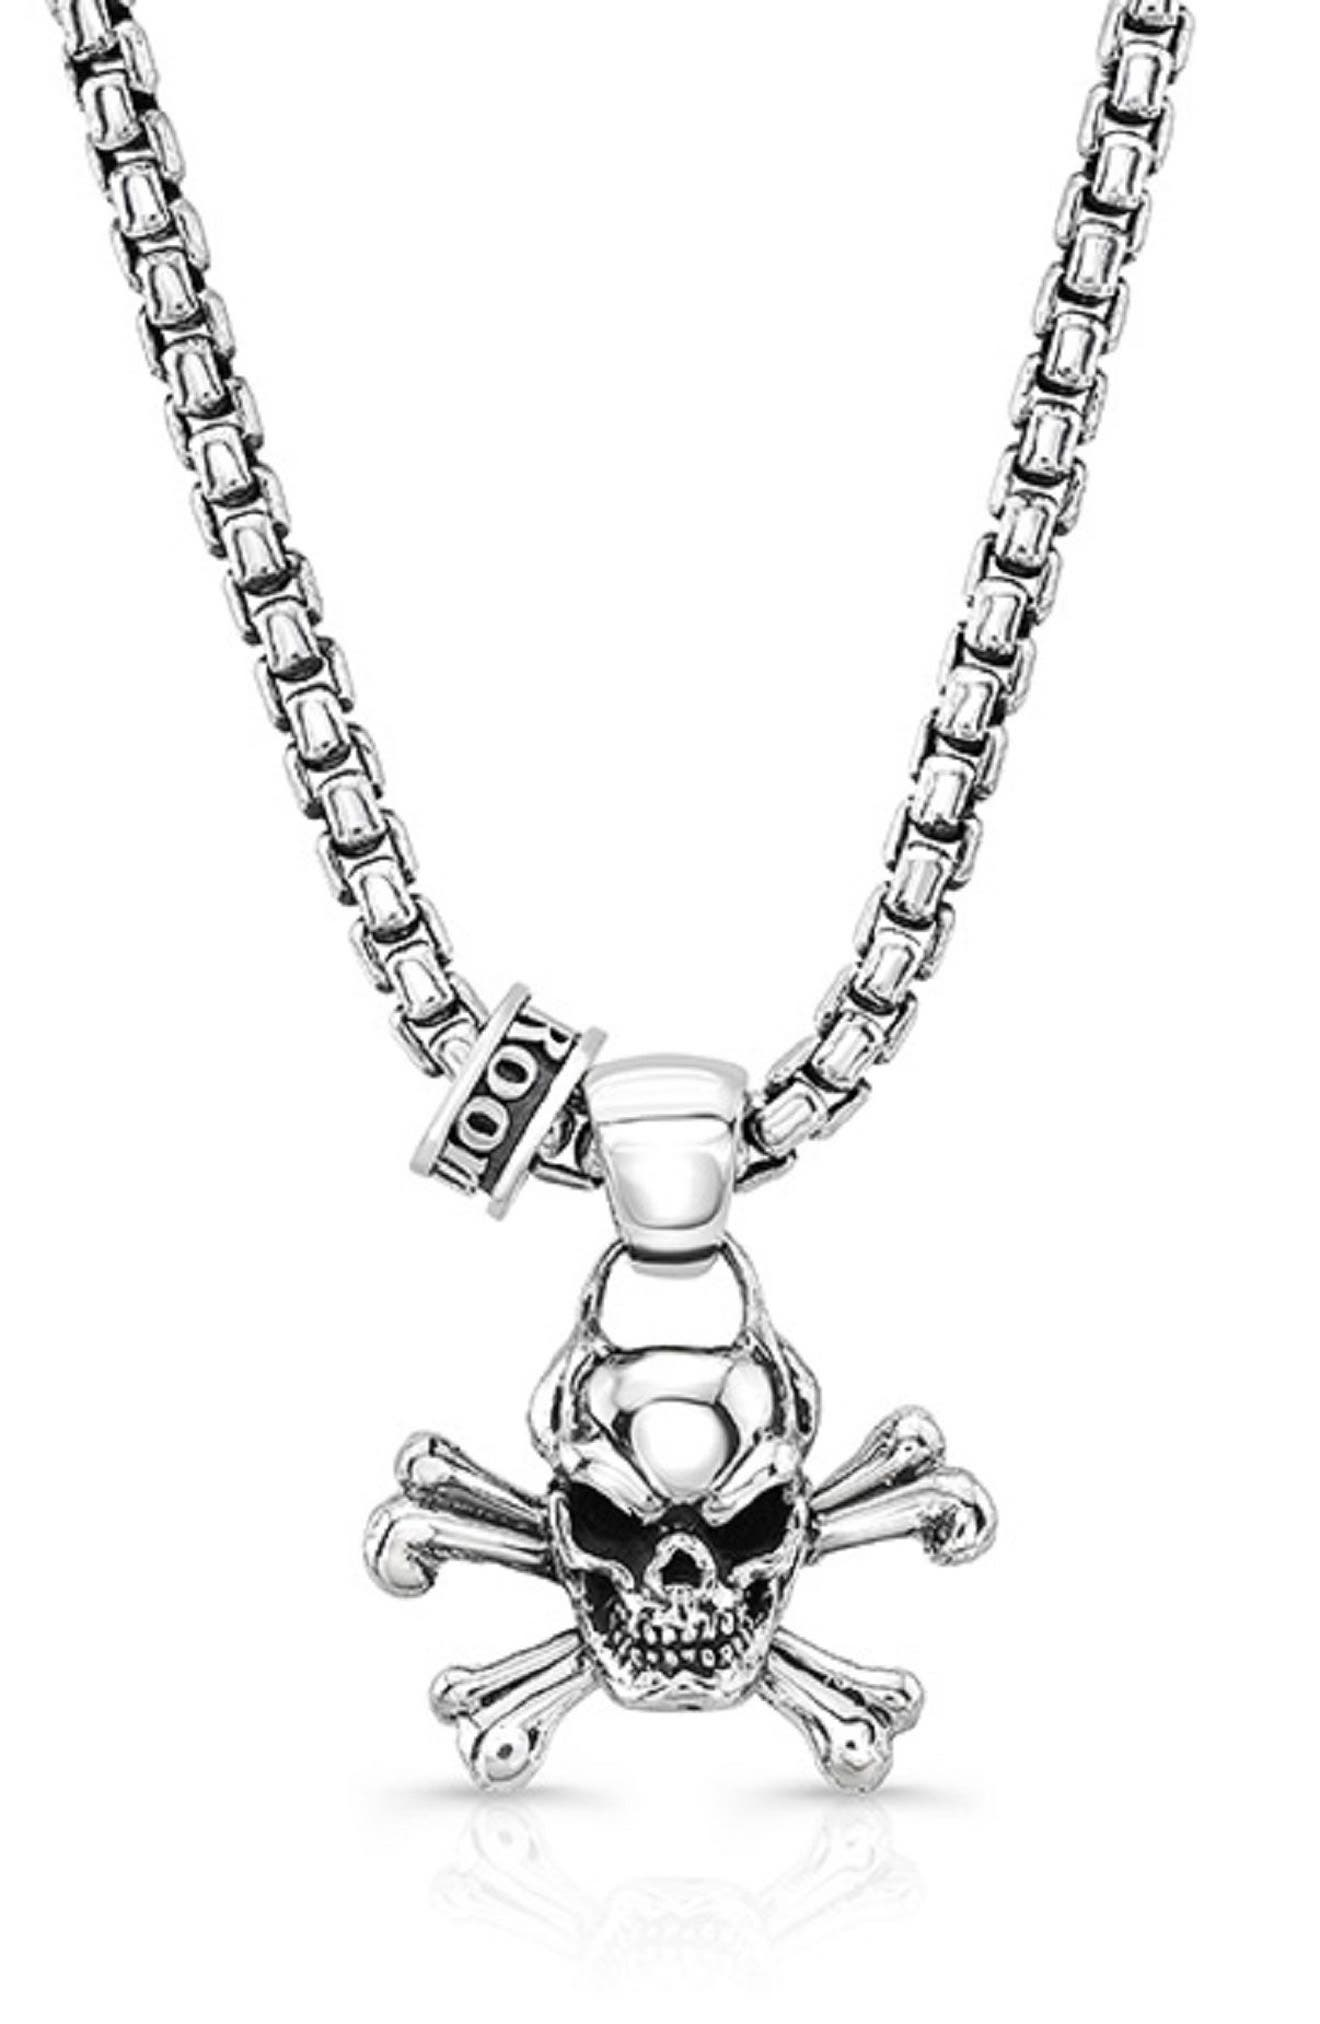 Skull 'n' Bone Pendant Necklace,                             Main thumbnail 1, color,